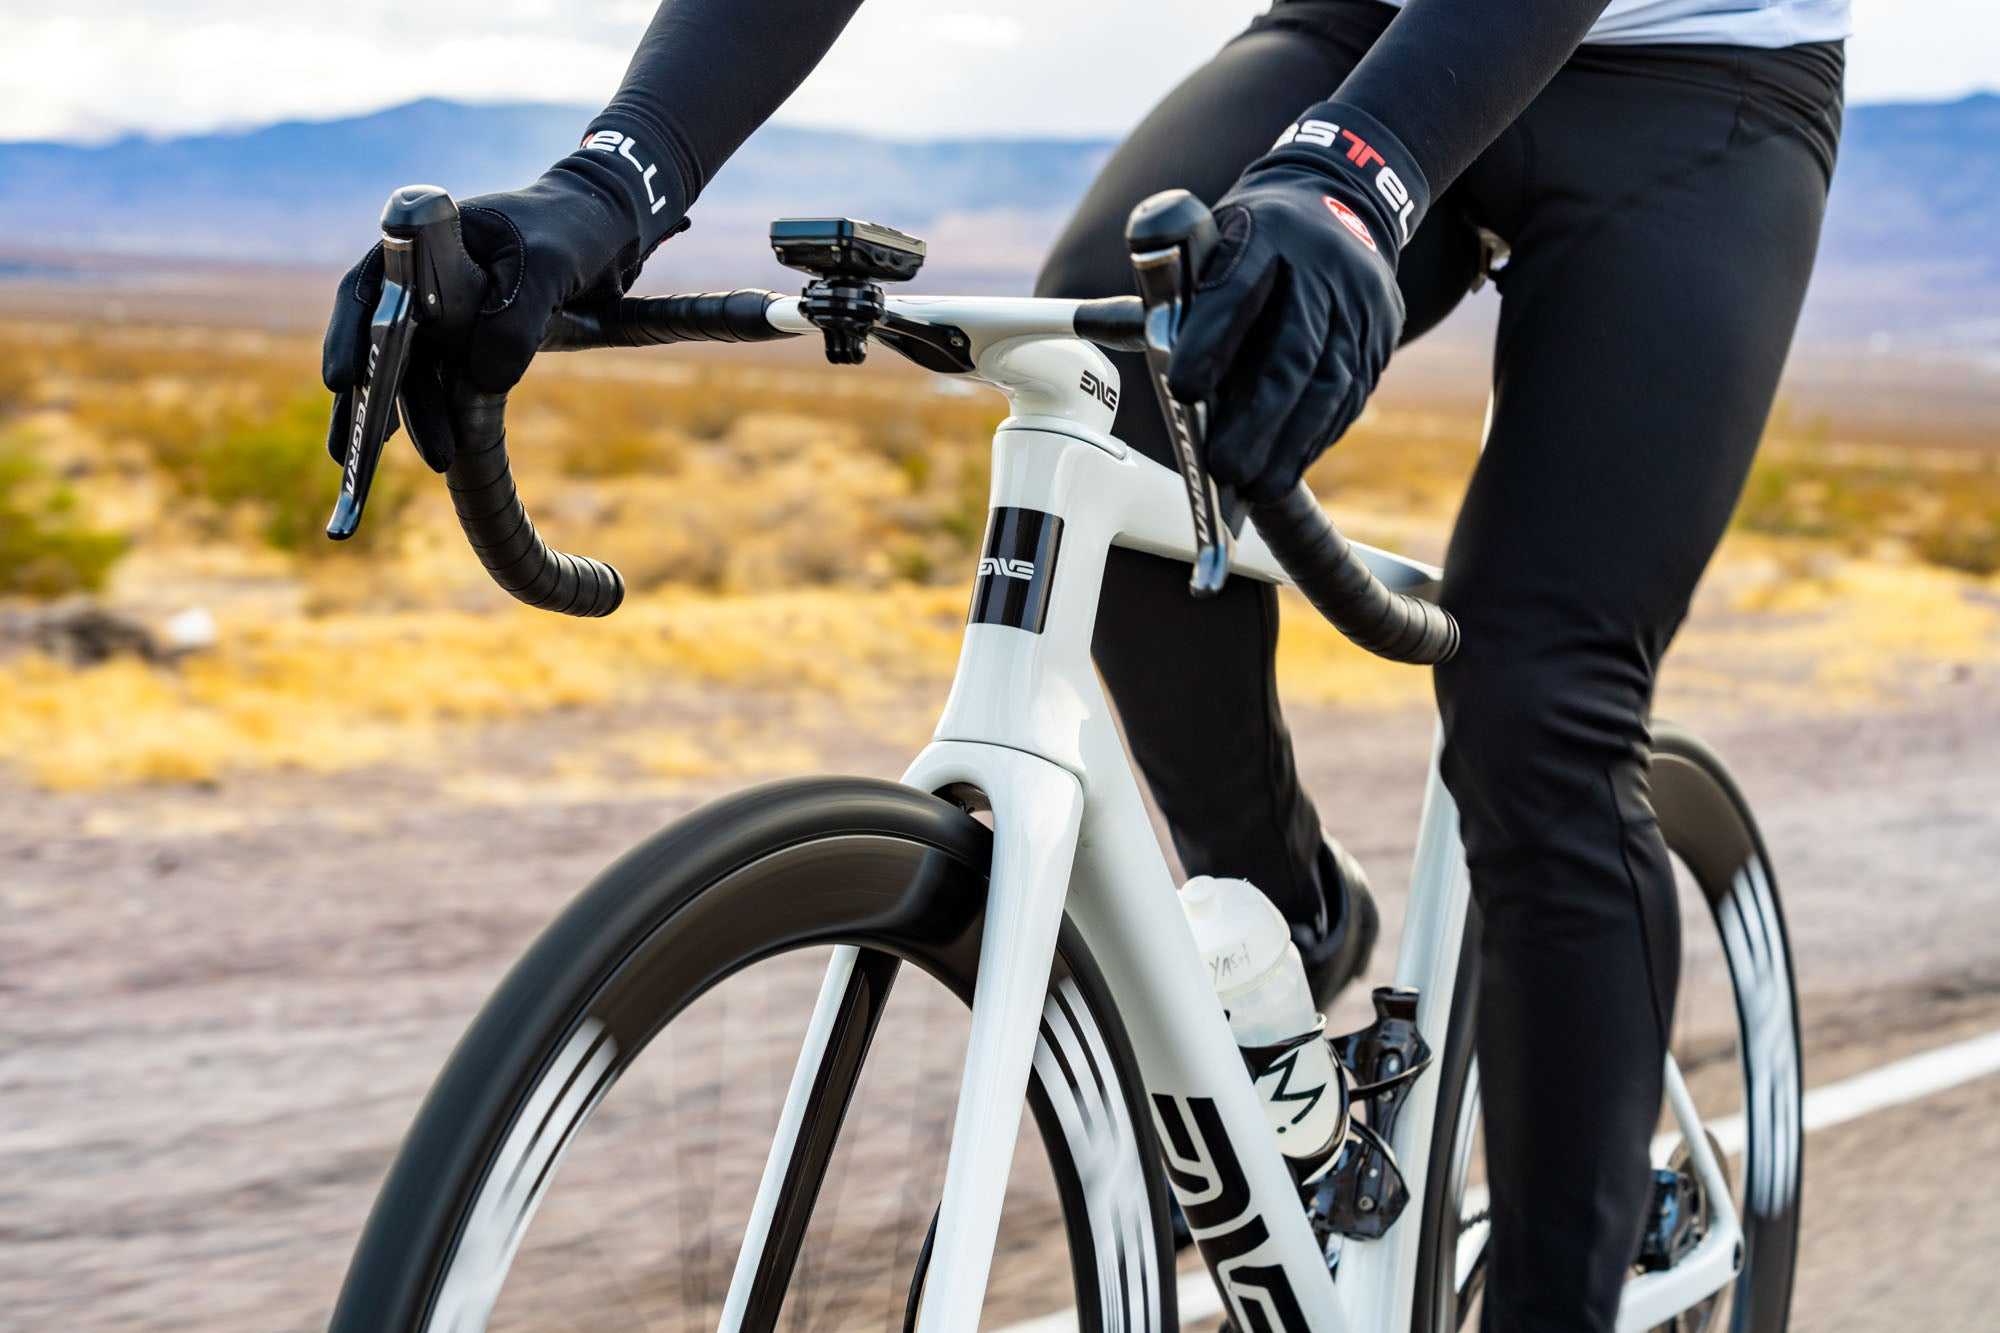 White ENVE Custom Road bikes might be faster